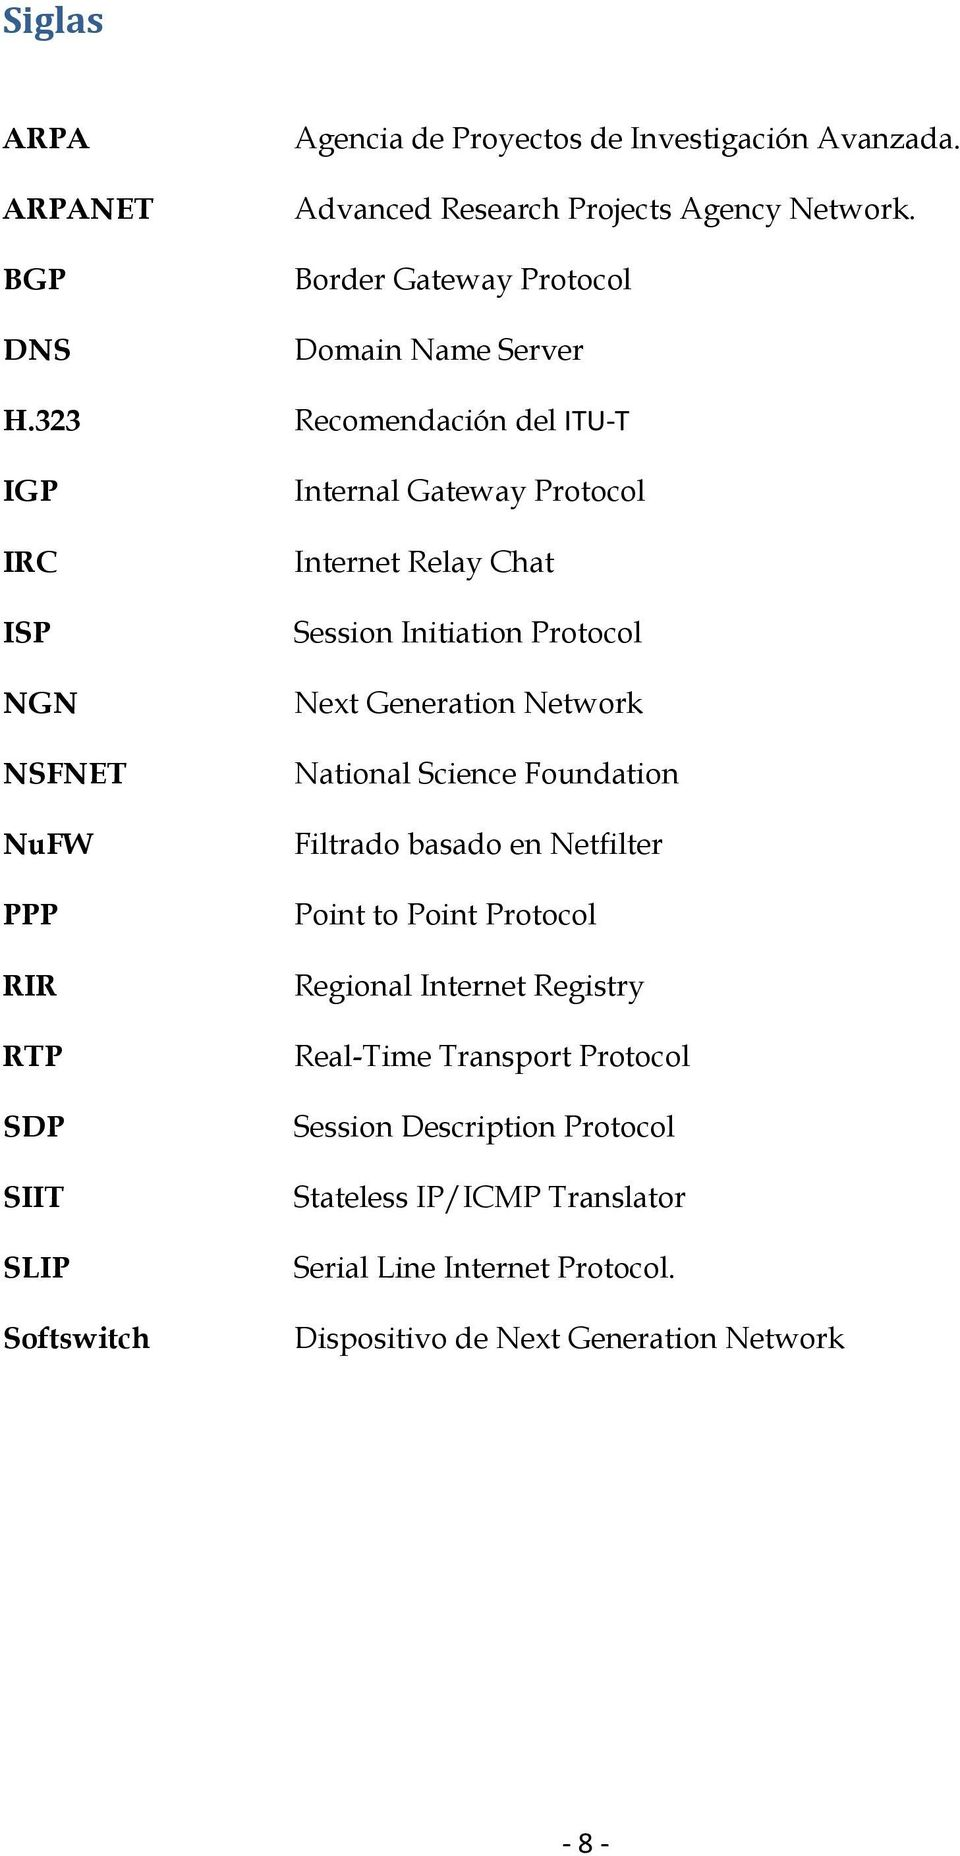 323 Recomendación del ITU-T IGP IRC ISP NGN NSFNET NuFW PPP RIR RTP SDP SIIT SLIP Softswitch Internal Gateway Protocol Internet Relay Chat Session